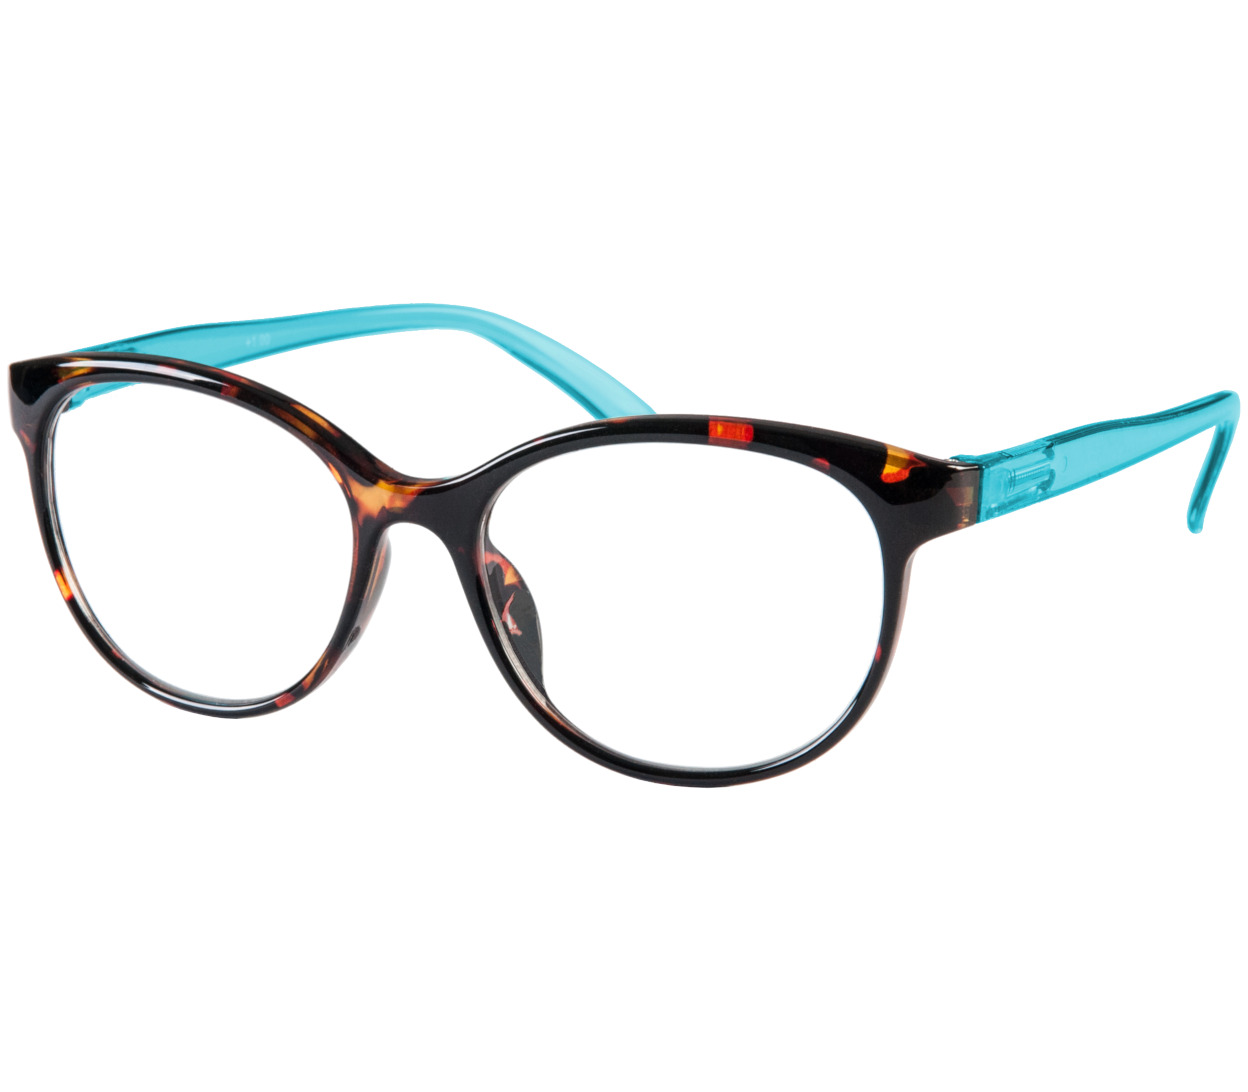 Main Image (Angle) - Lala (Blue) Cat Eye Reading Glasses